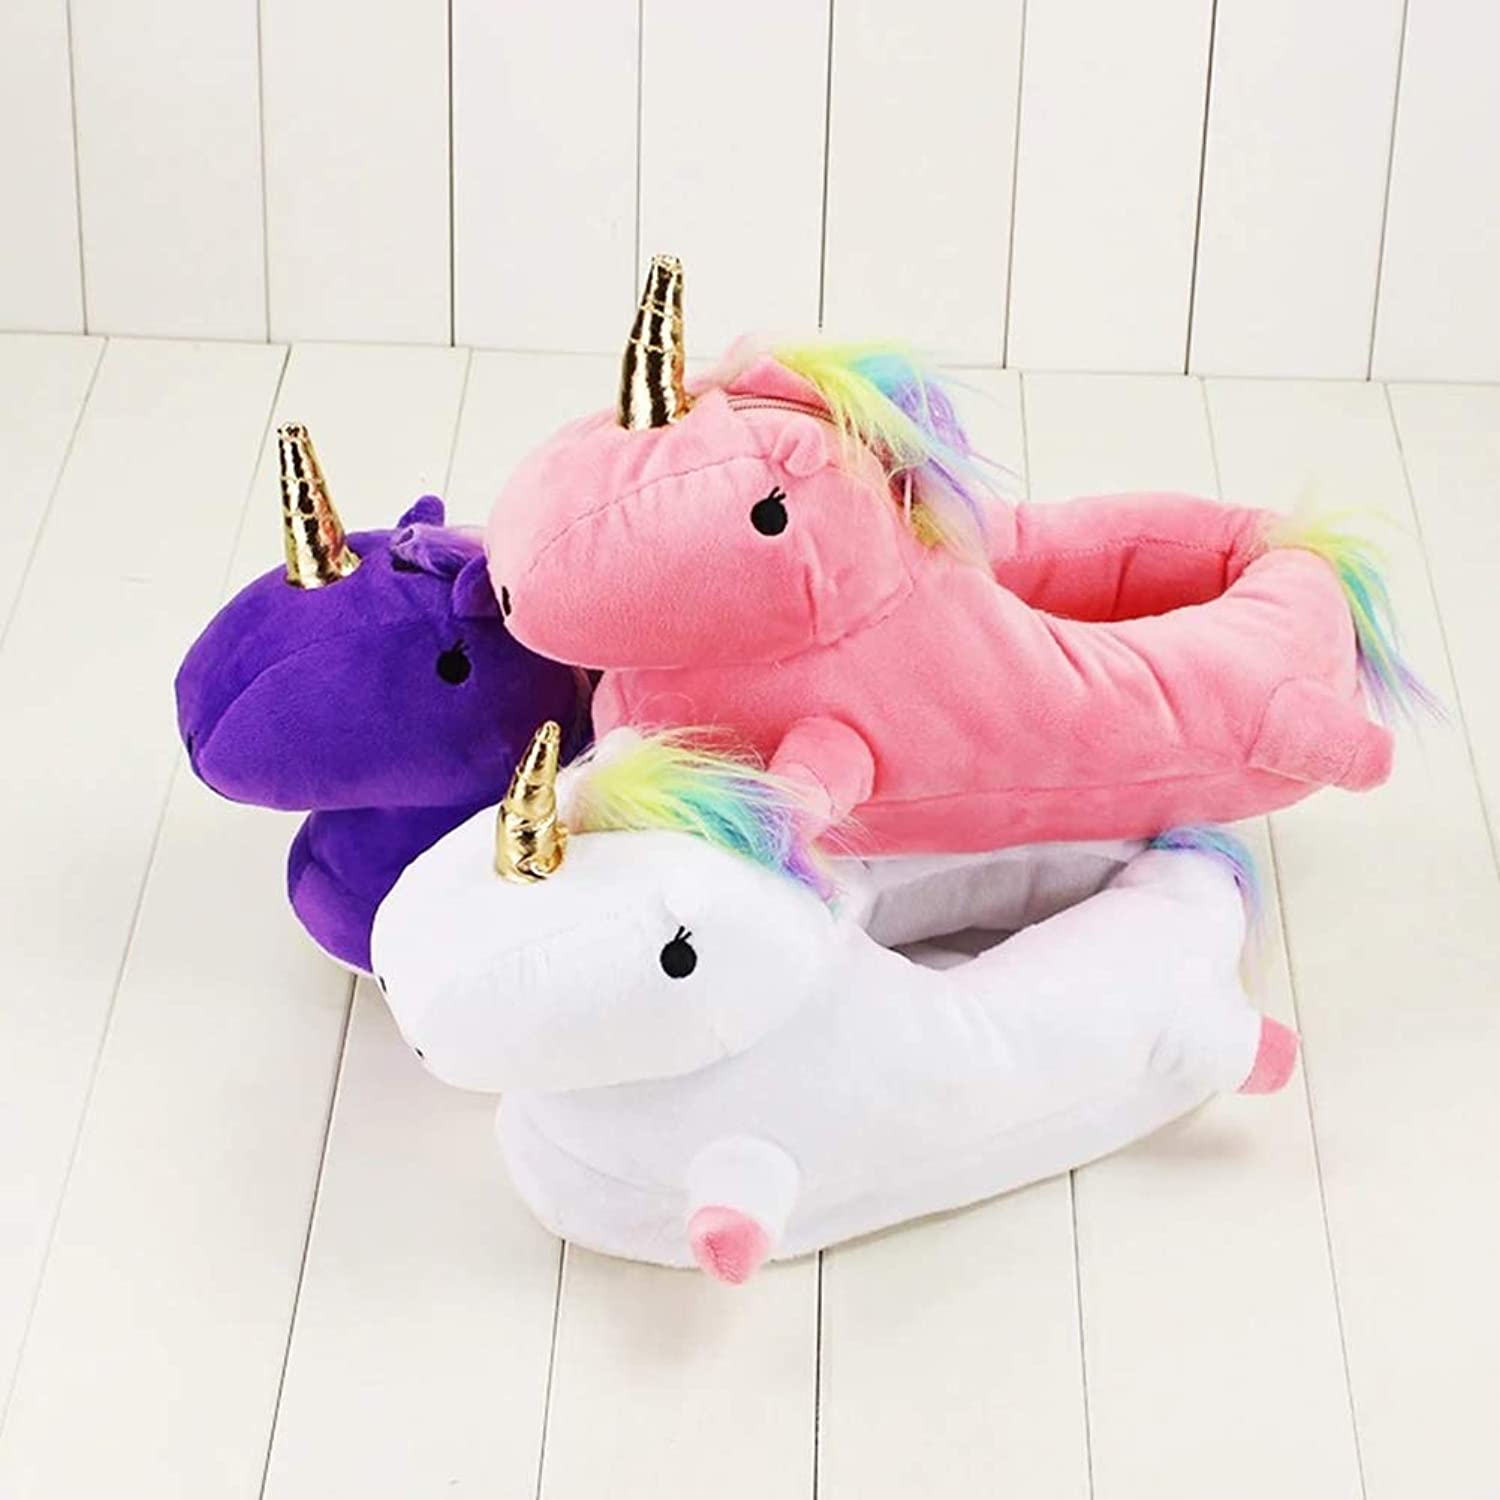 1629cm Unicorn Slippers with Light 3 Styles Slippers Pink Purple White Kawaii Unicorn Slippers Winter Slippers for Warm Gift